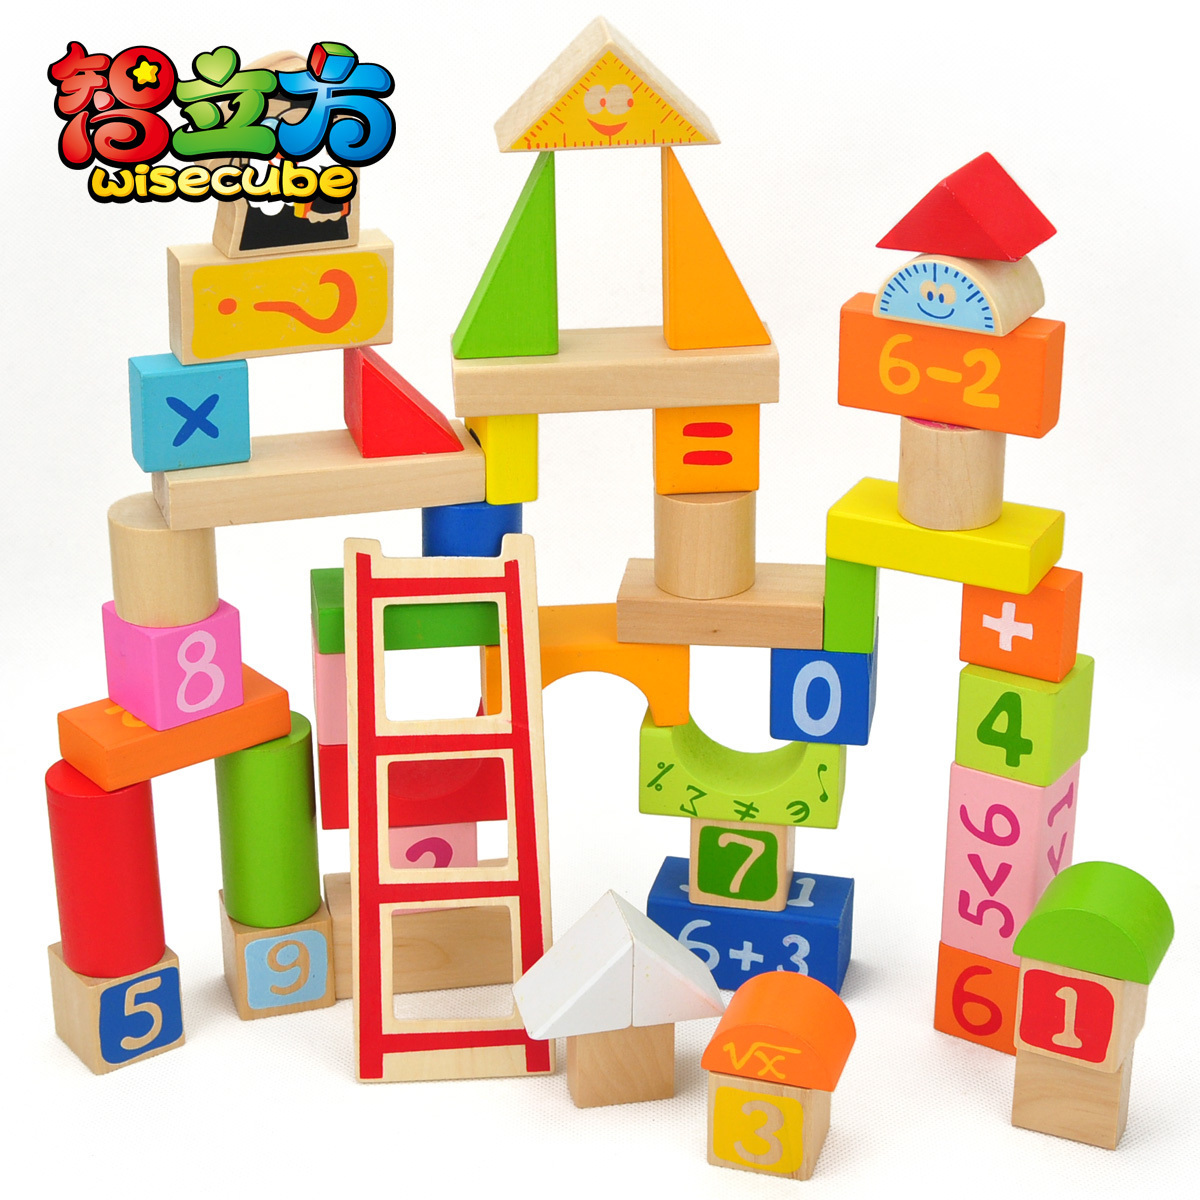 Building blocks toy wooden big 50 figure blocks wool puzzle toy